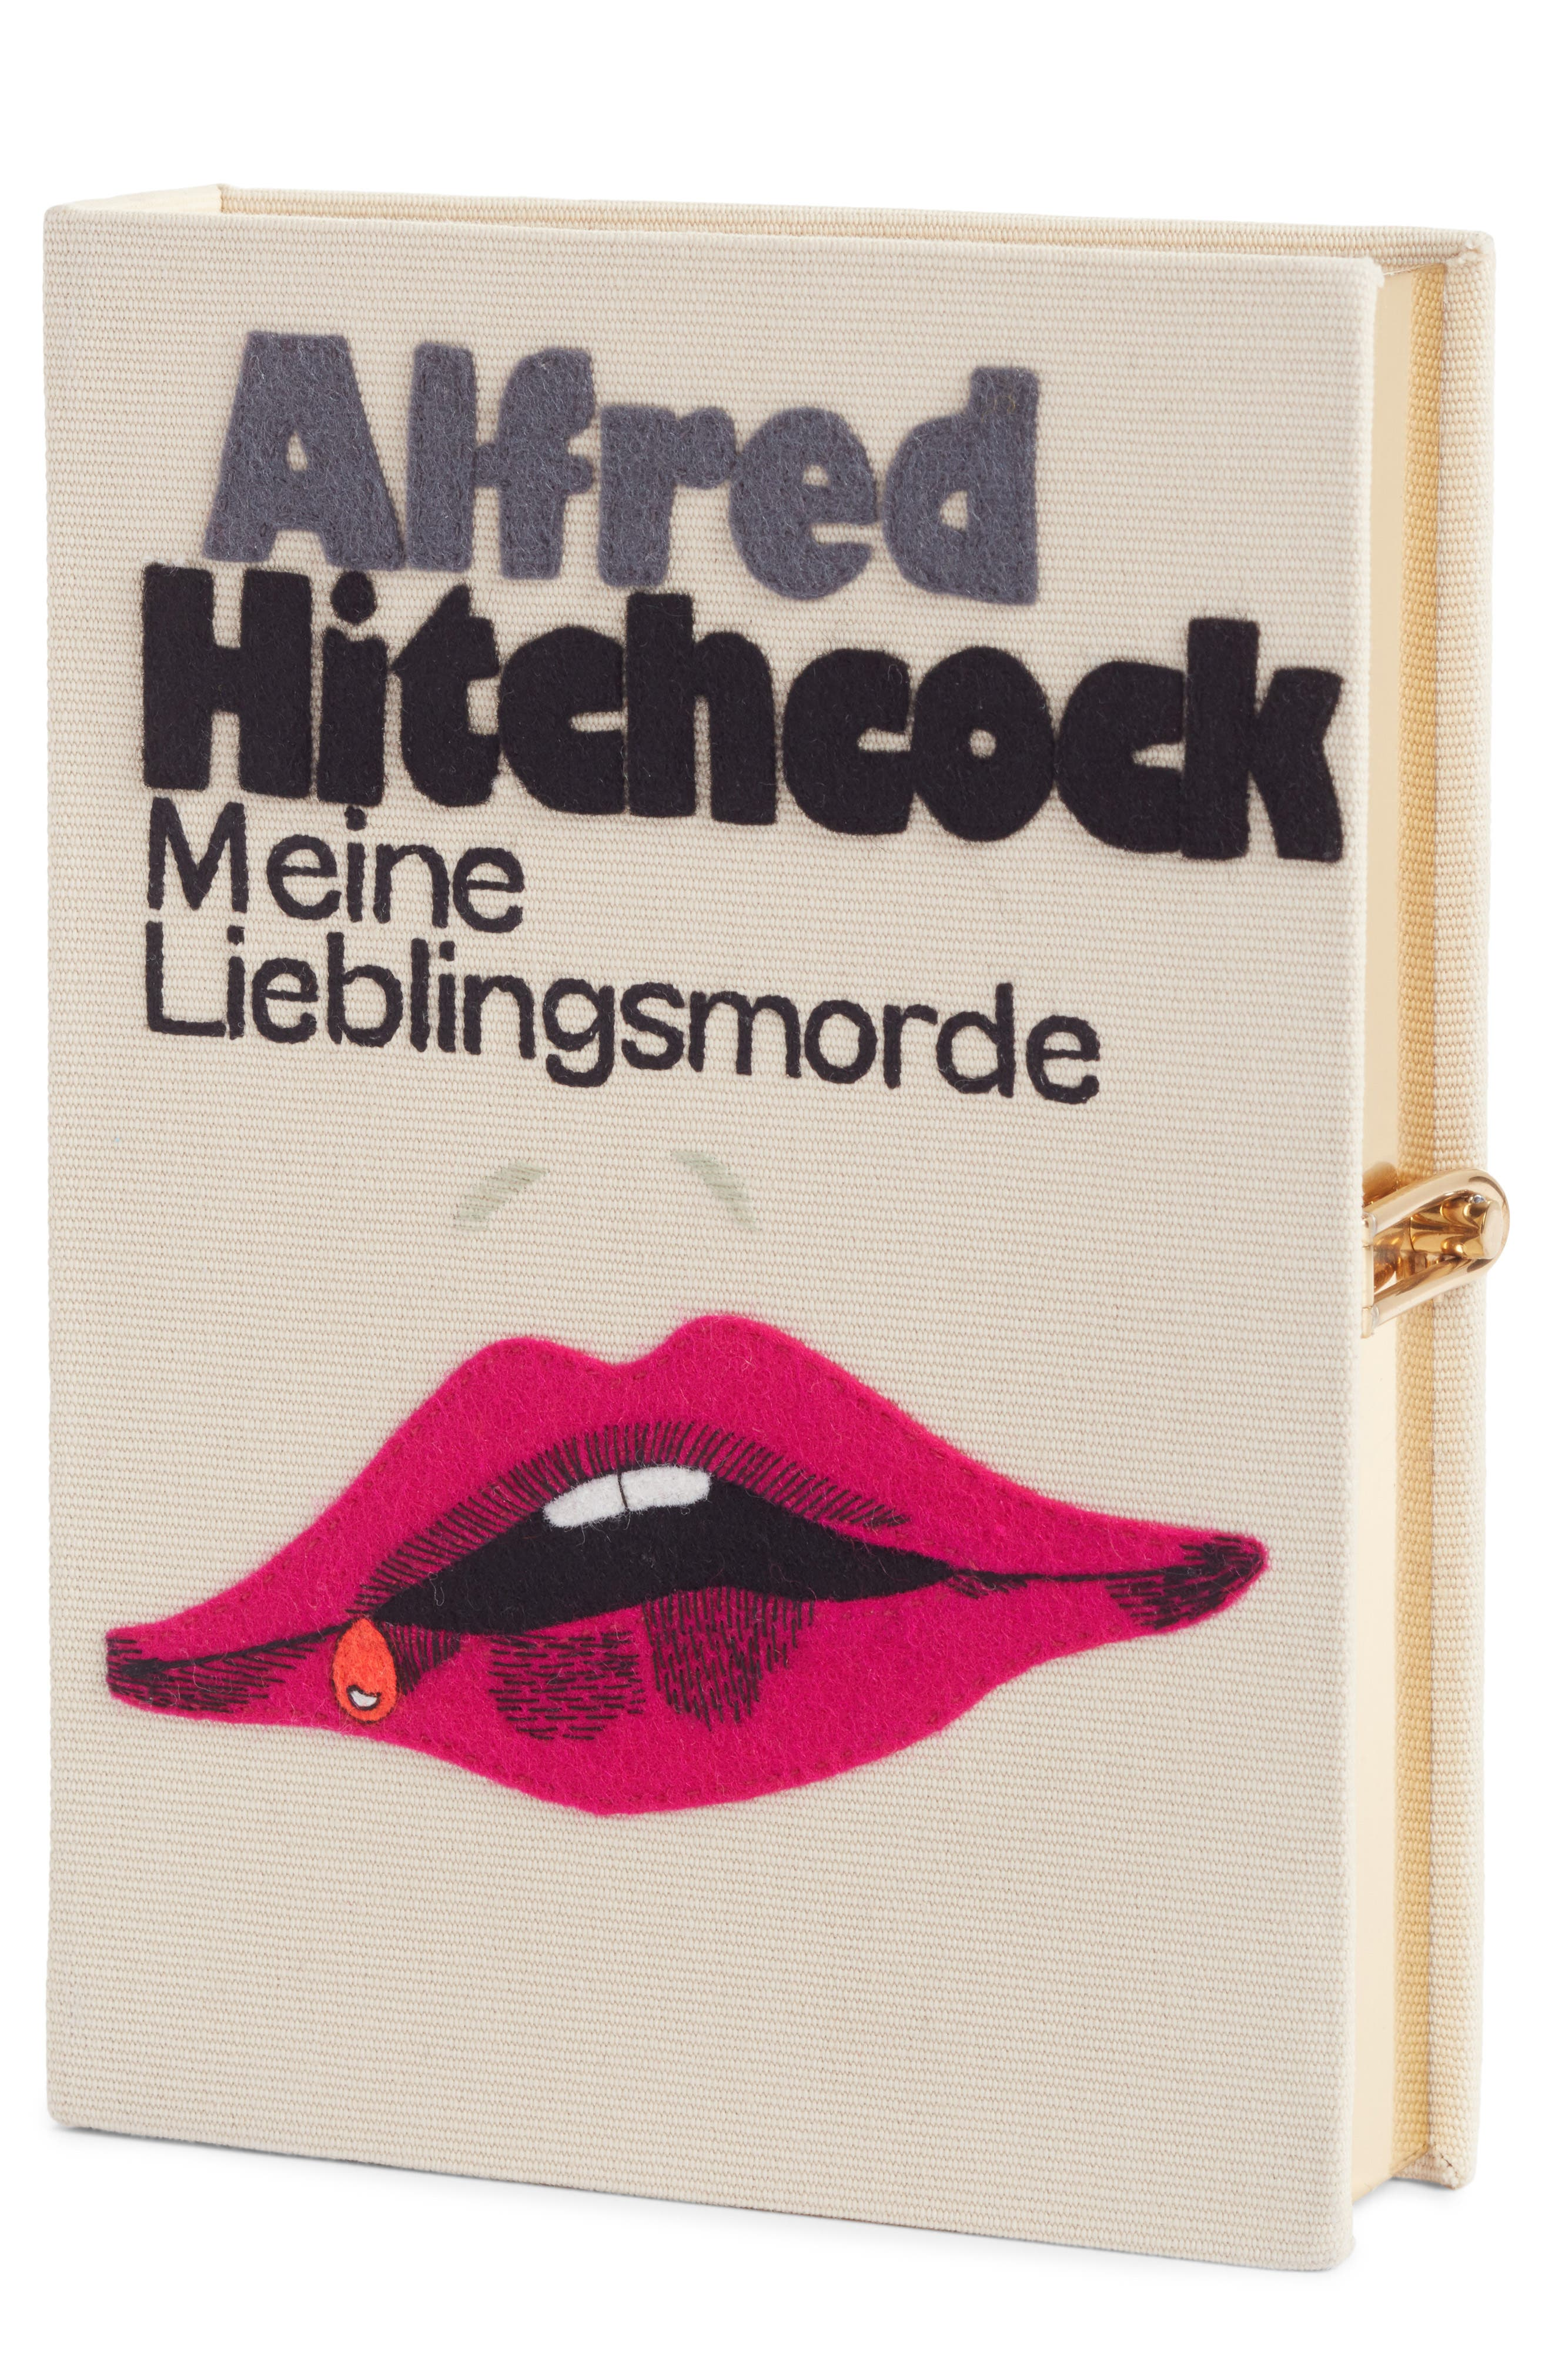 Main Image - Olympia Le-Tan Hitchcock - 'Meine Lieblingsmorde' Book Clutch